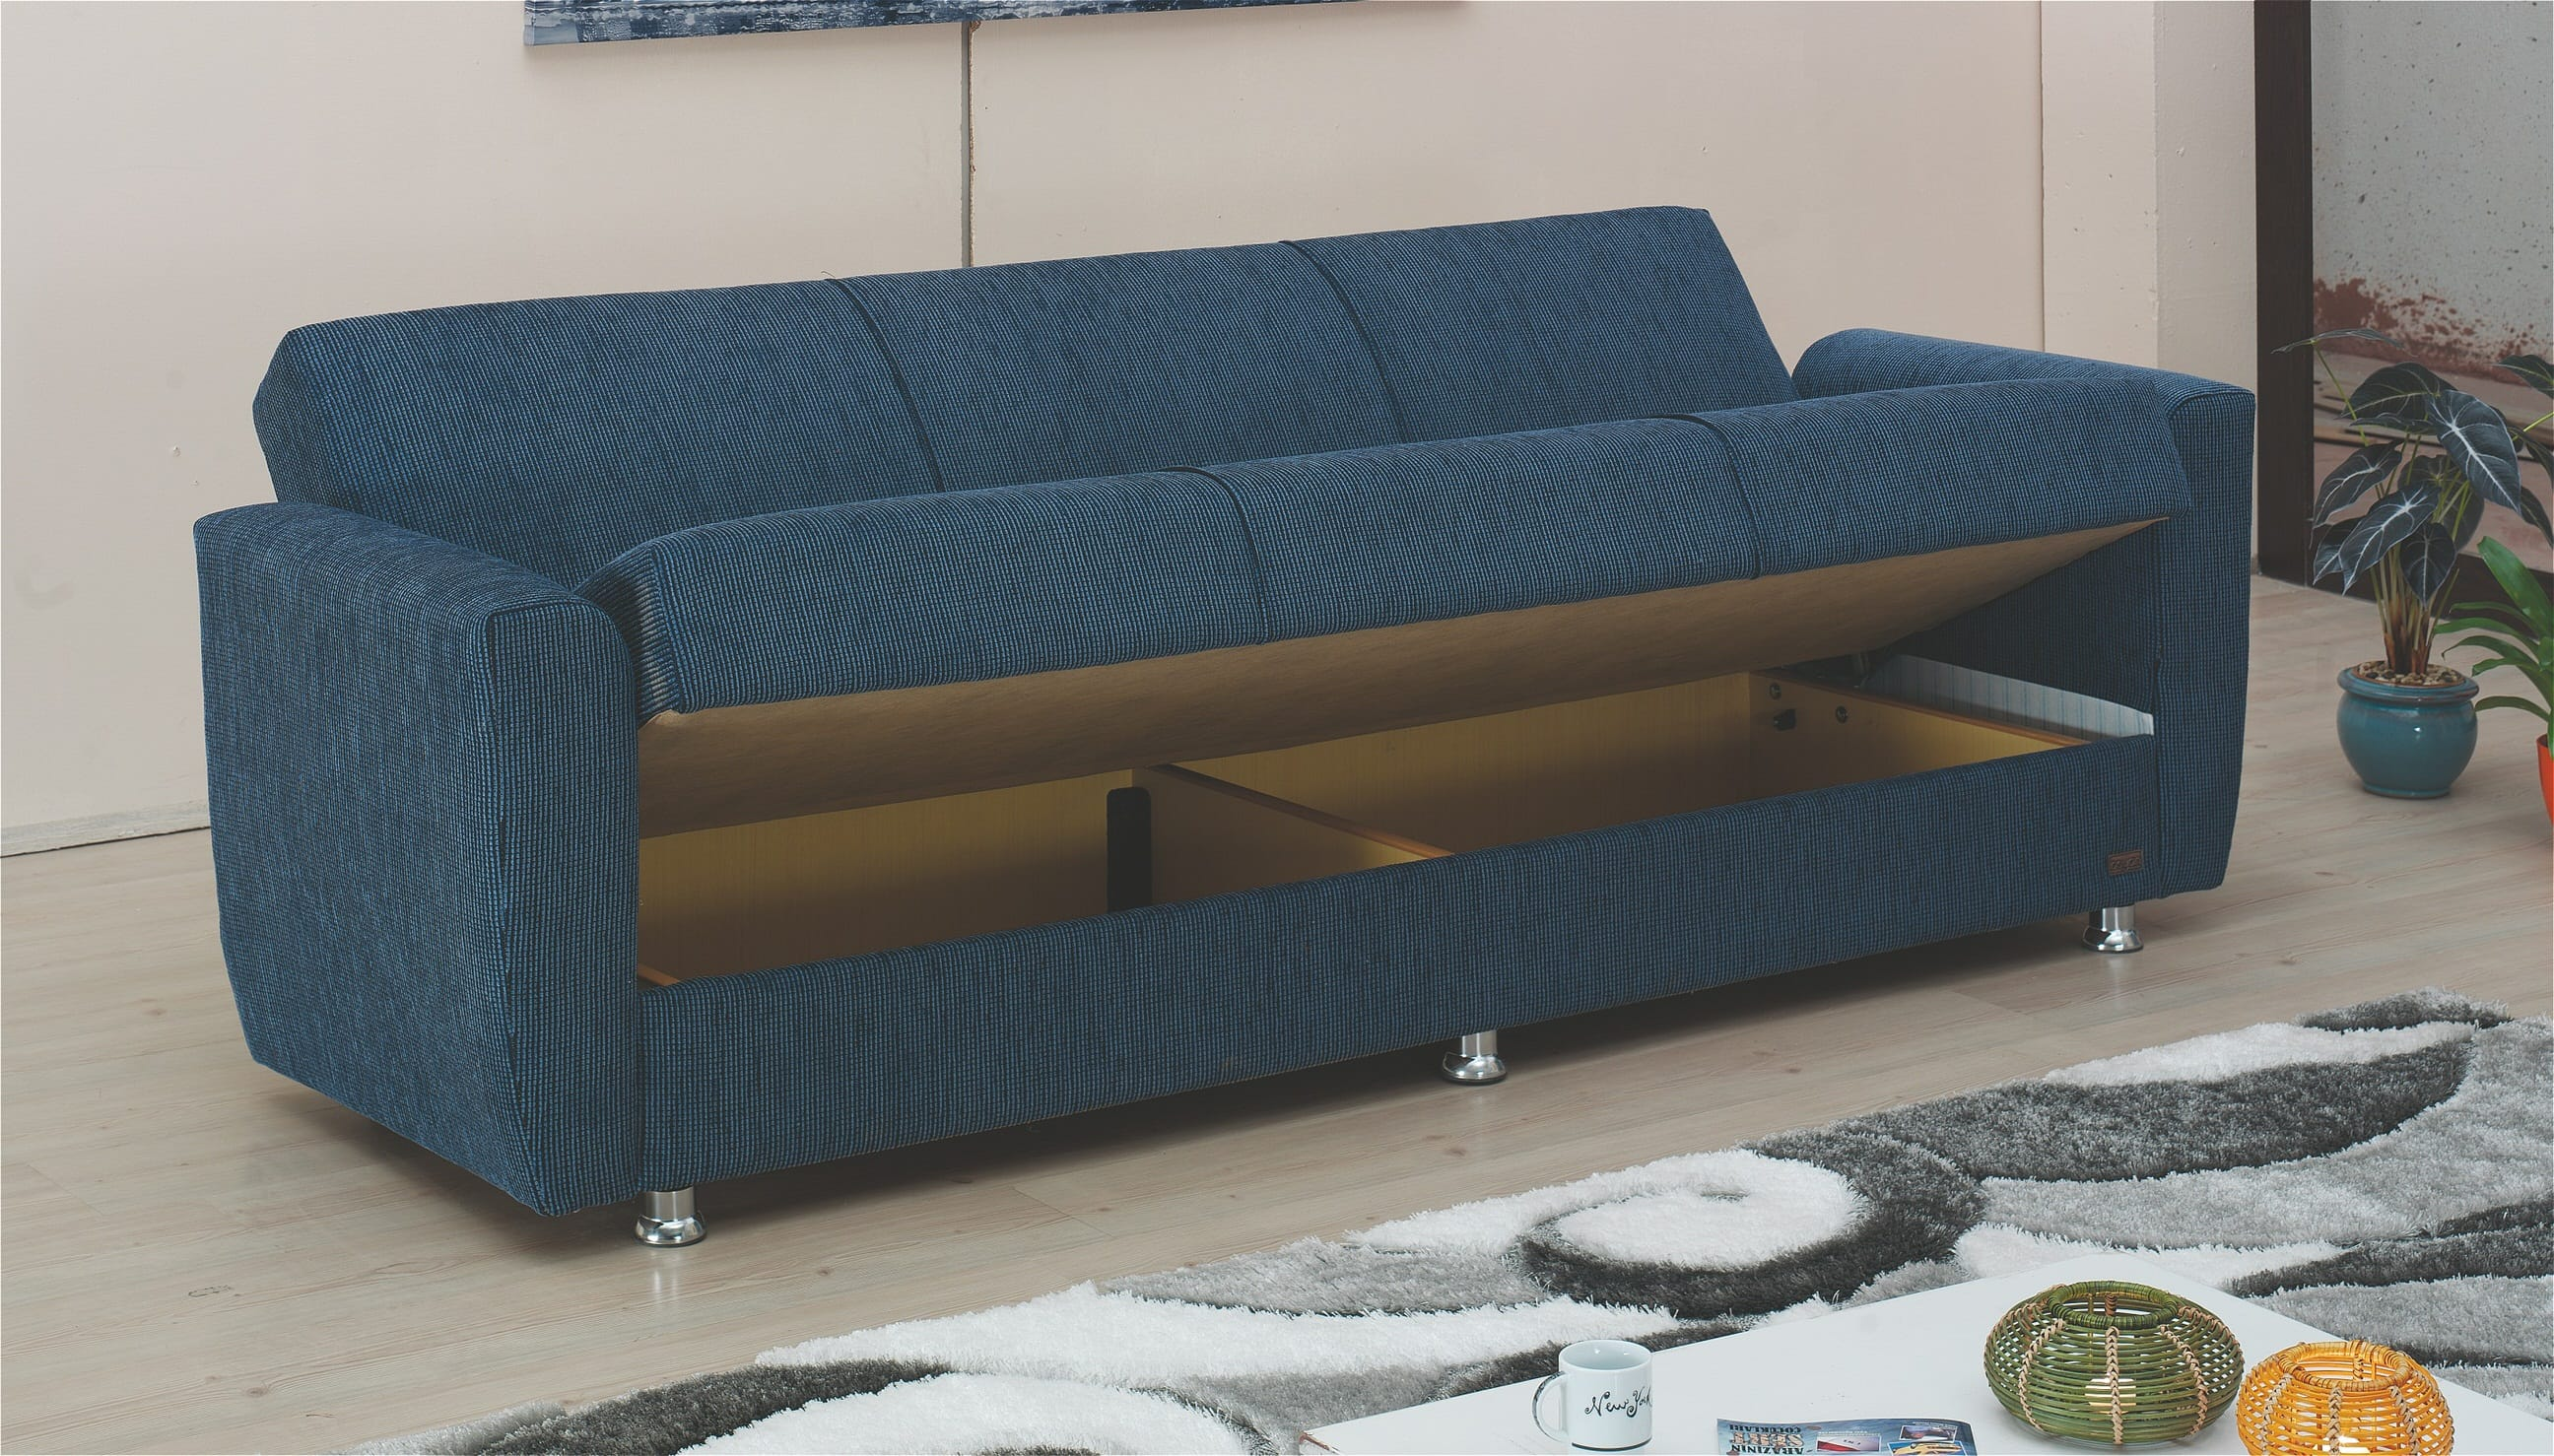 Fabulous Miami Sofa Bed By Empire Furniture Usa Download Free Architecture Designs Scobabritishbridgeorg